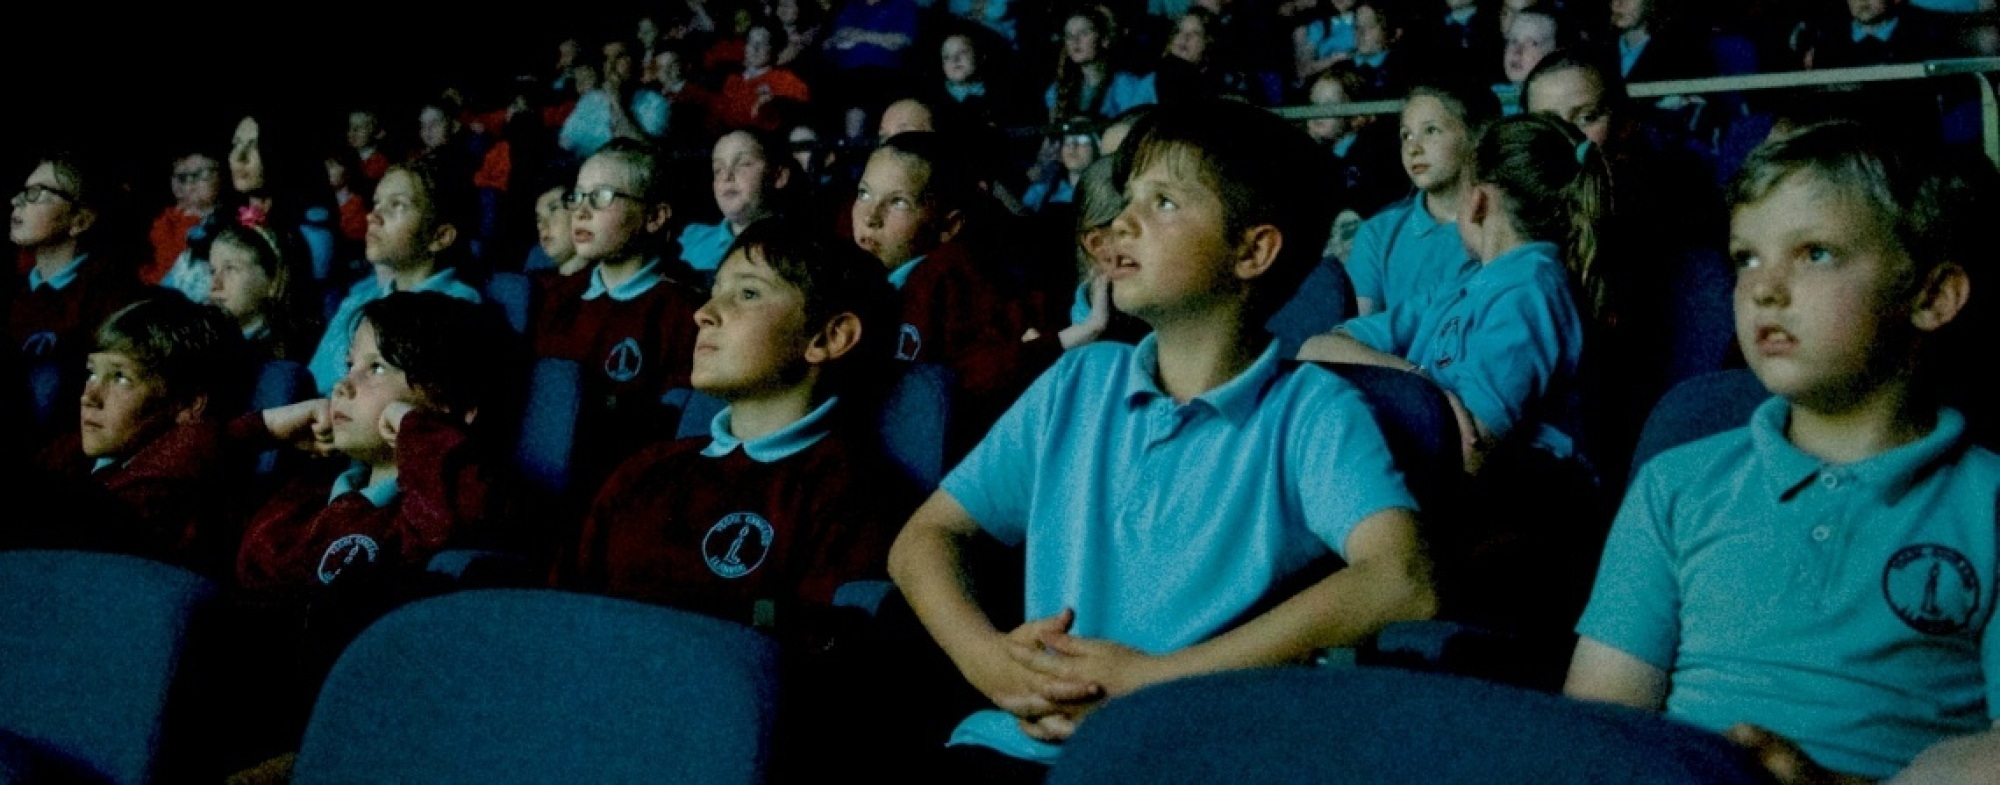 Dark auditorium, audience of school children are watching something unseen on stage or screen